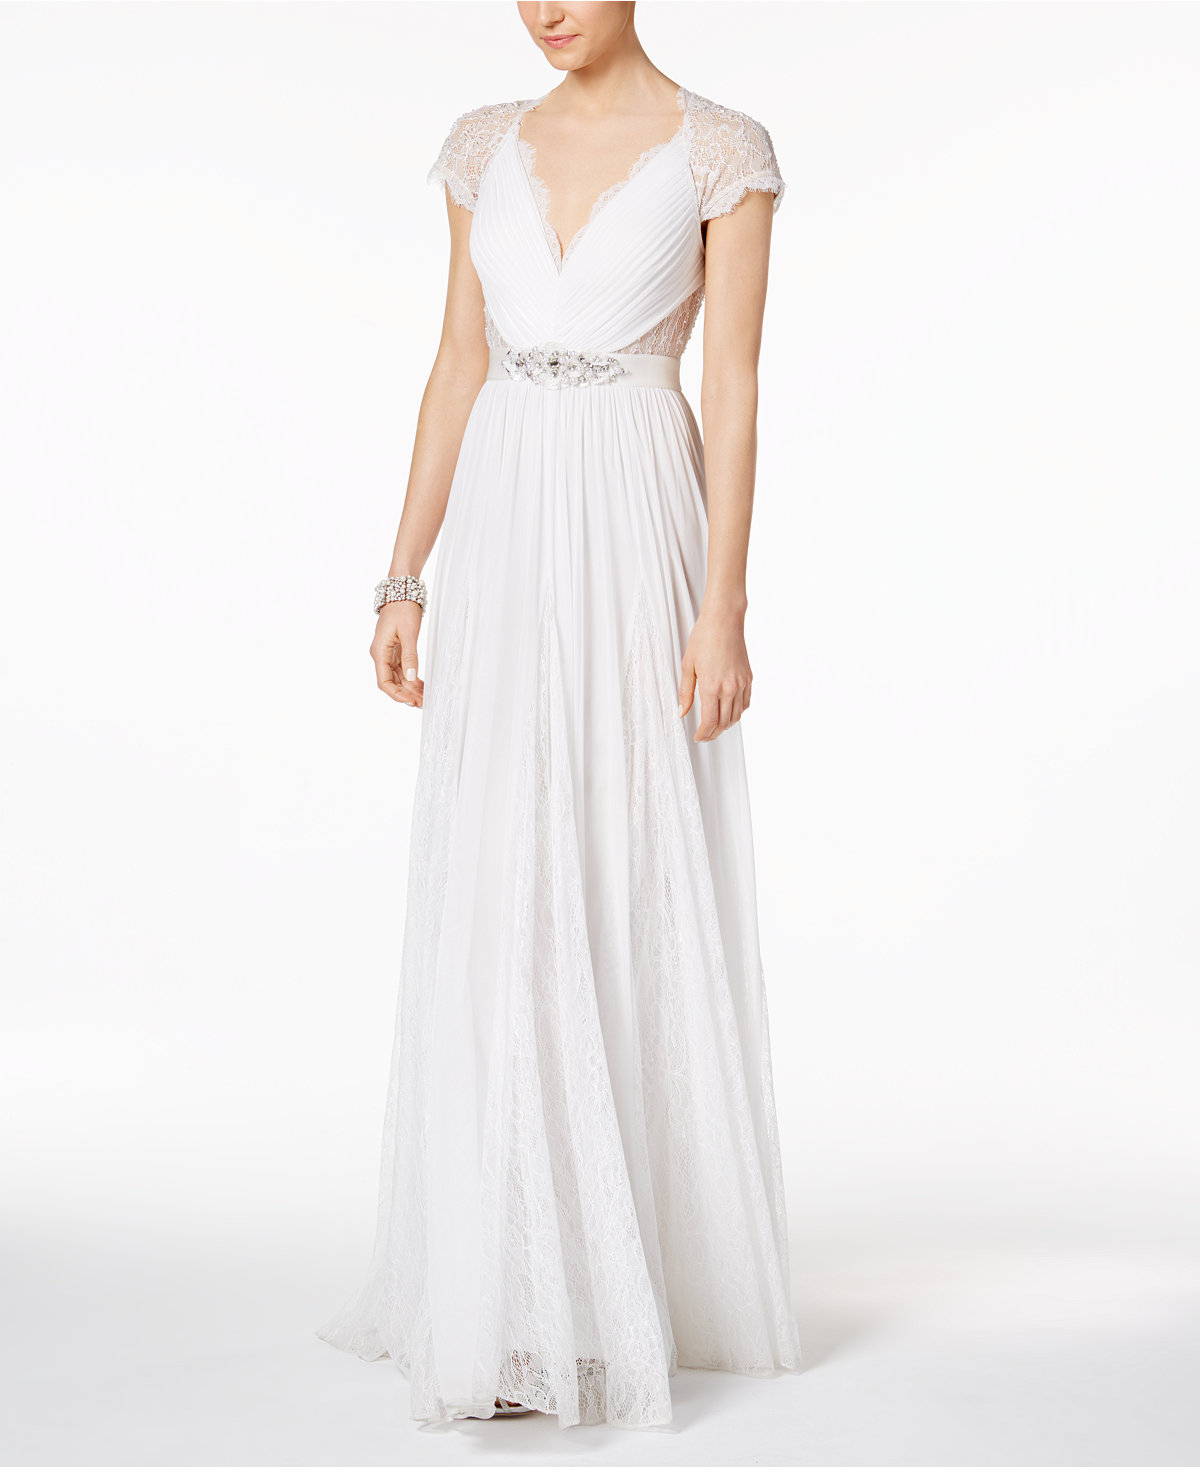 Adrianna Papell Illusion Embellished A-Line Gown   20 Wedding Dresses Under $1000   BridalGush.com